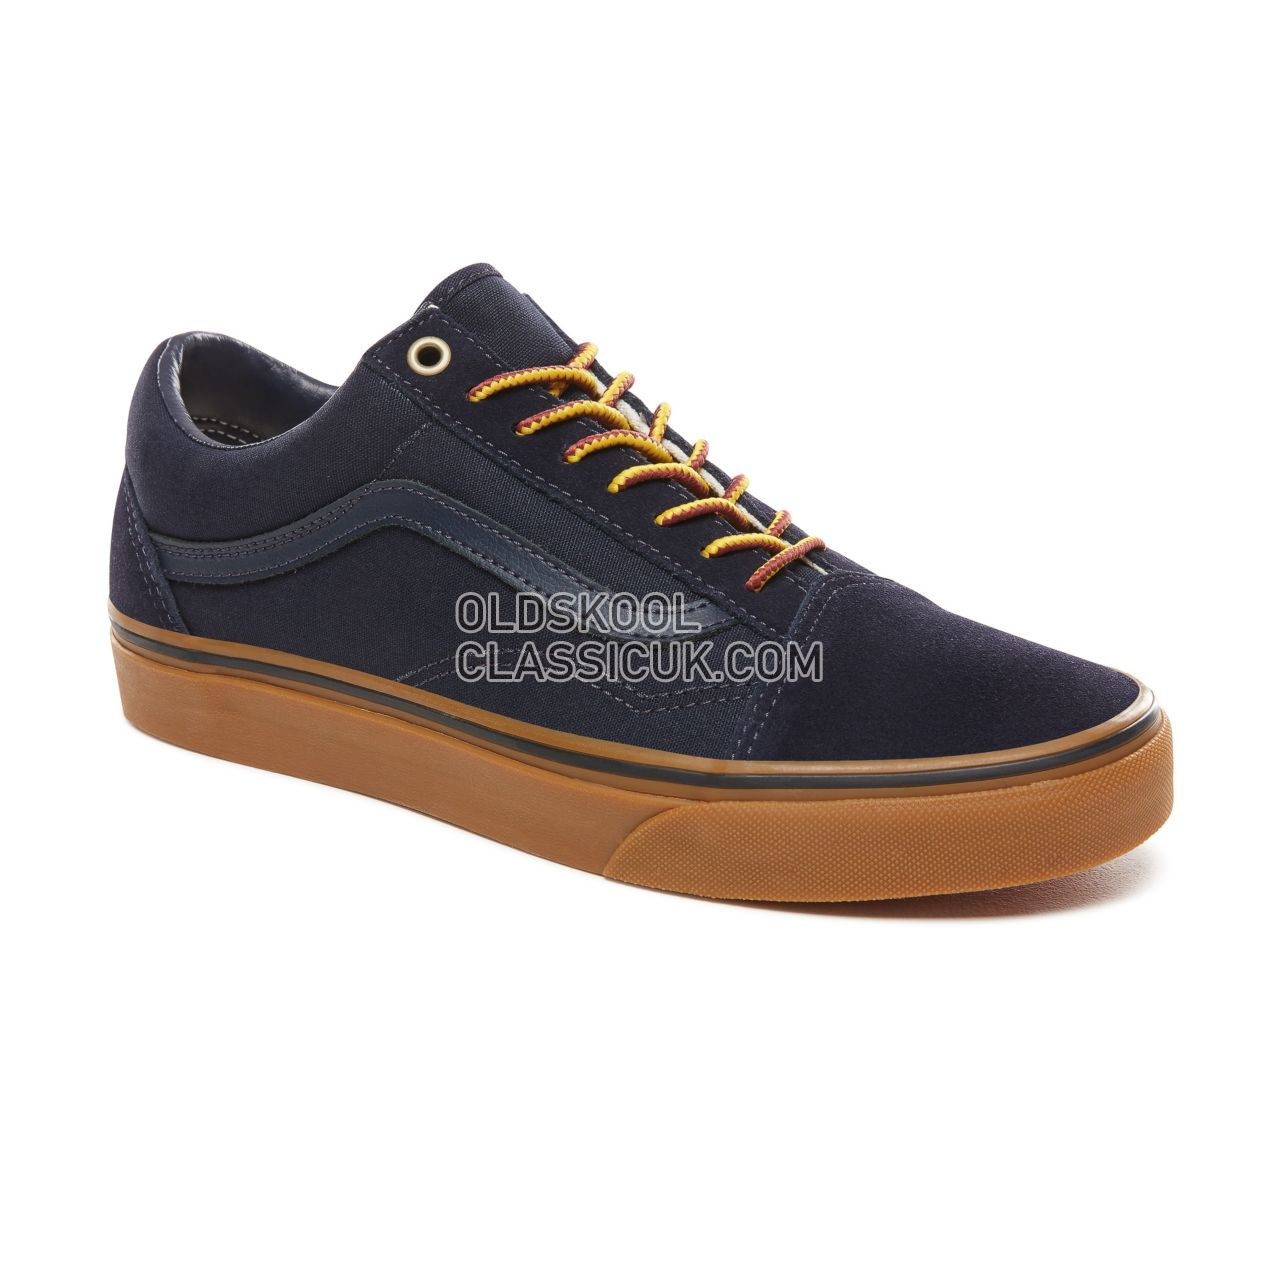 Vans Gum Old Skool Sneakers Mens Womens Unisex (Gumsole) Sky Captain/Boot Lace VN0A38G1UNF Shoes